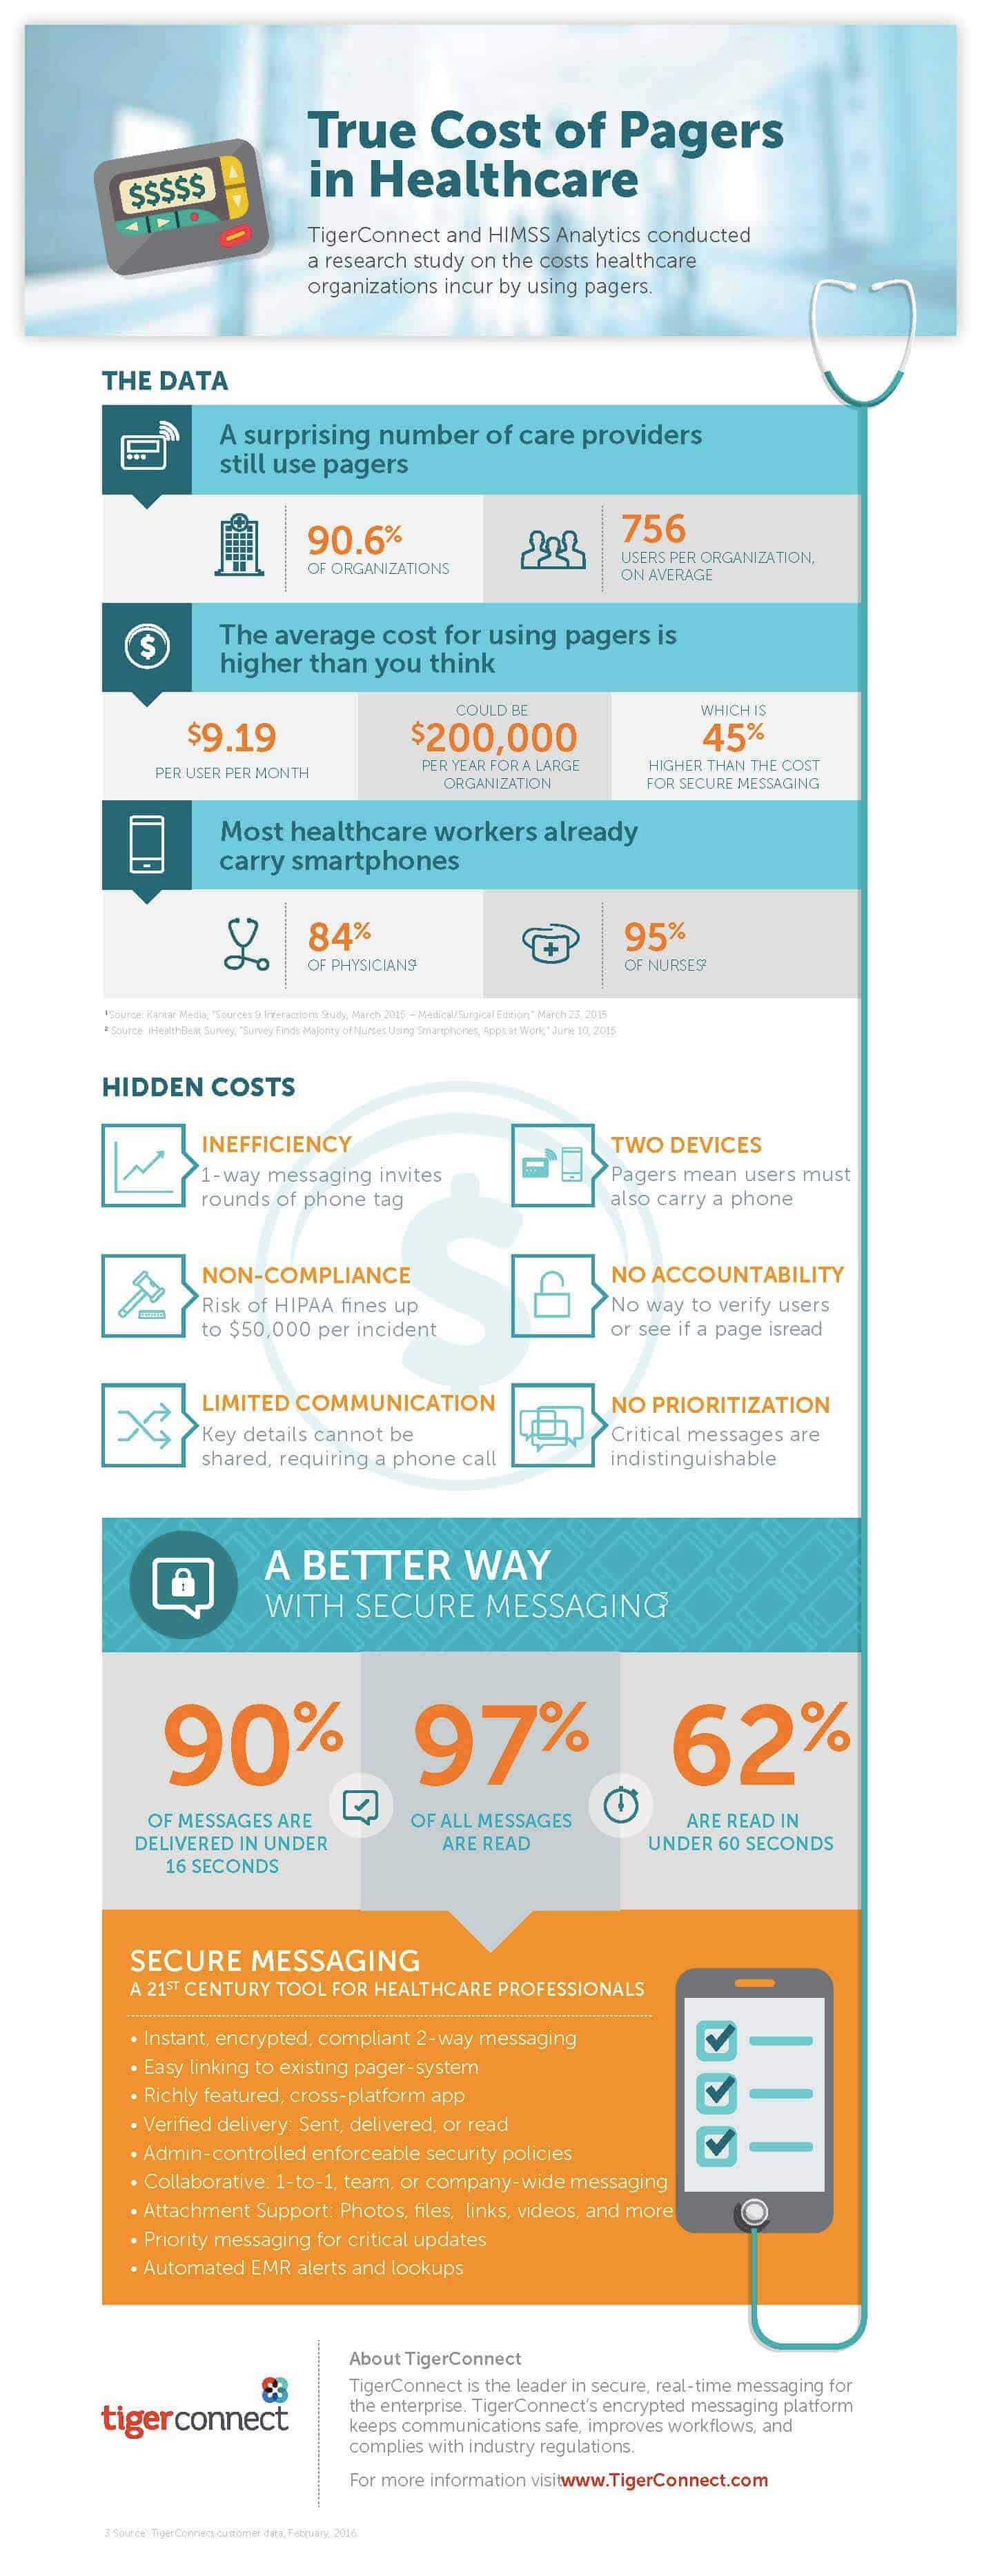 True Cost of Pagers in Healthcare Infographic Preview